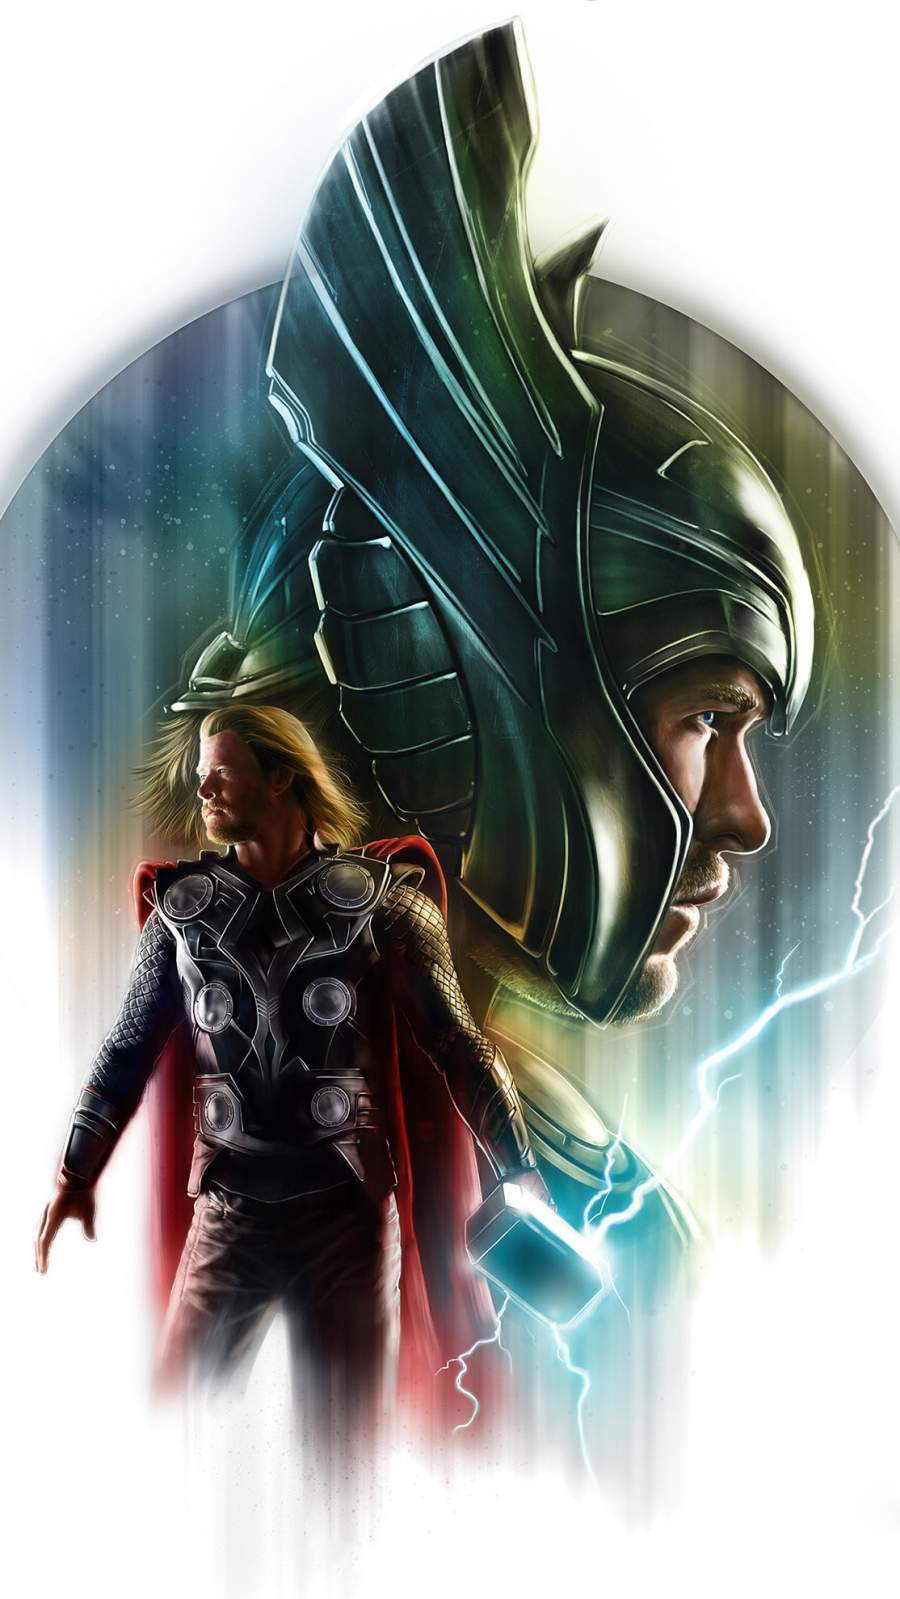 Thor Artwork iPhone Wallpaper